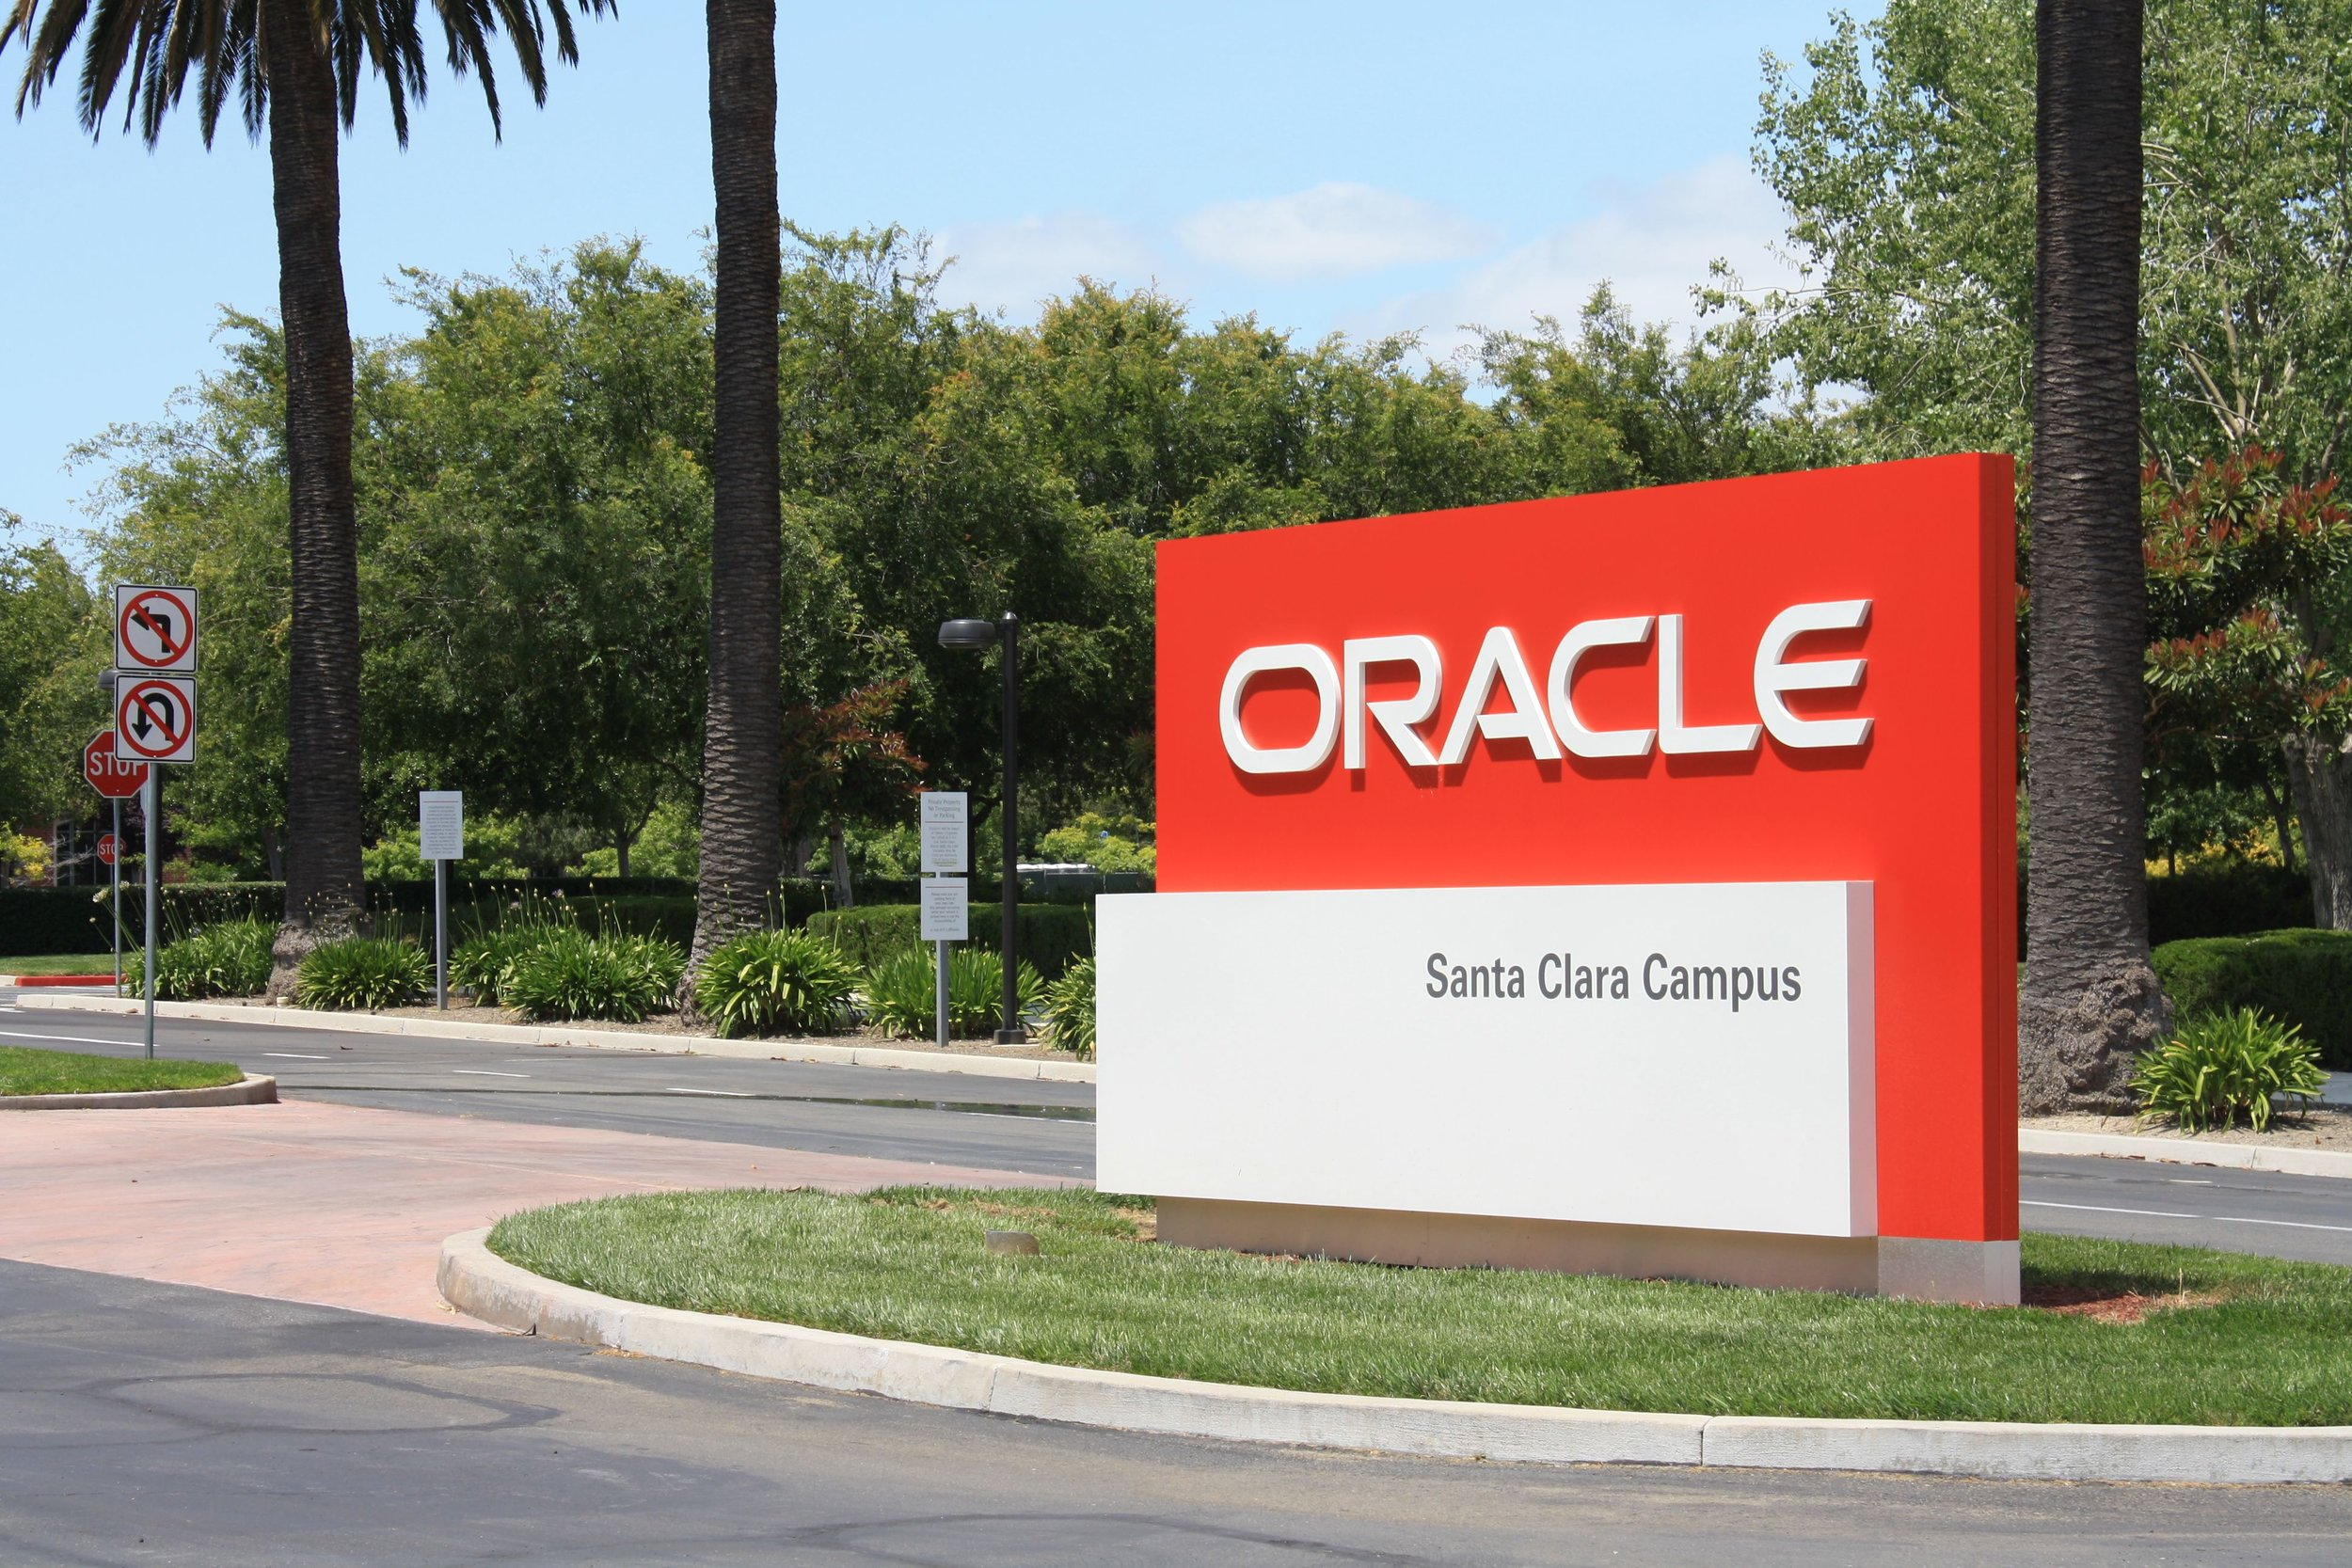 oracle-santa-clara-campus-1.jpg